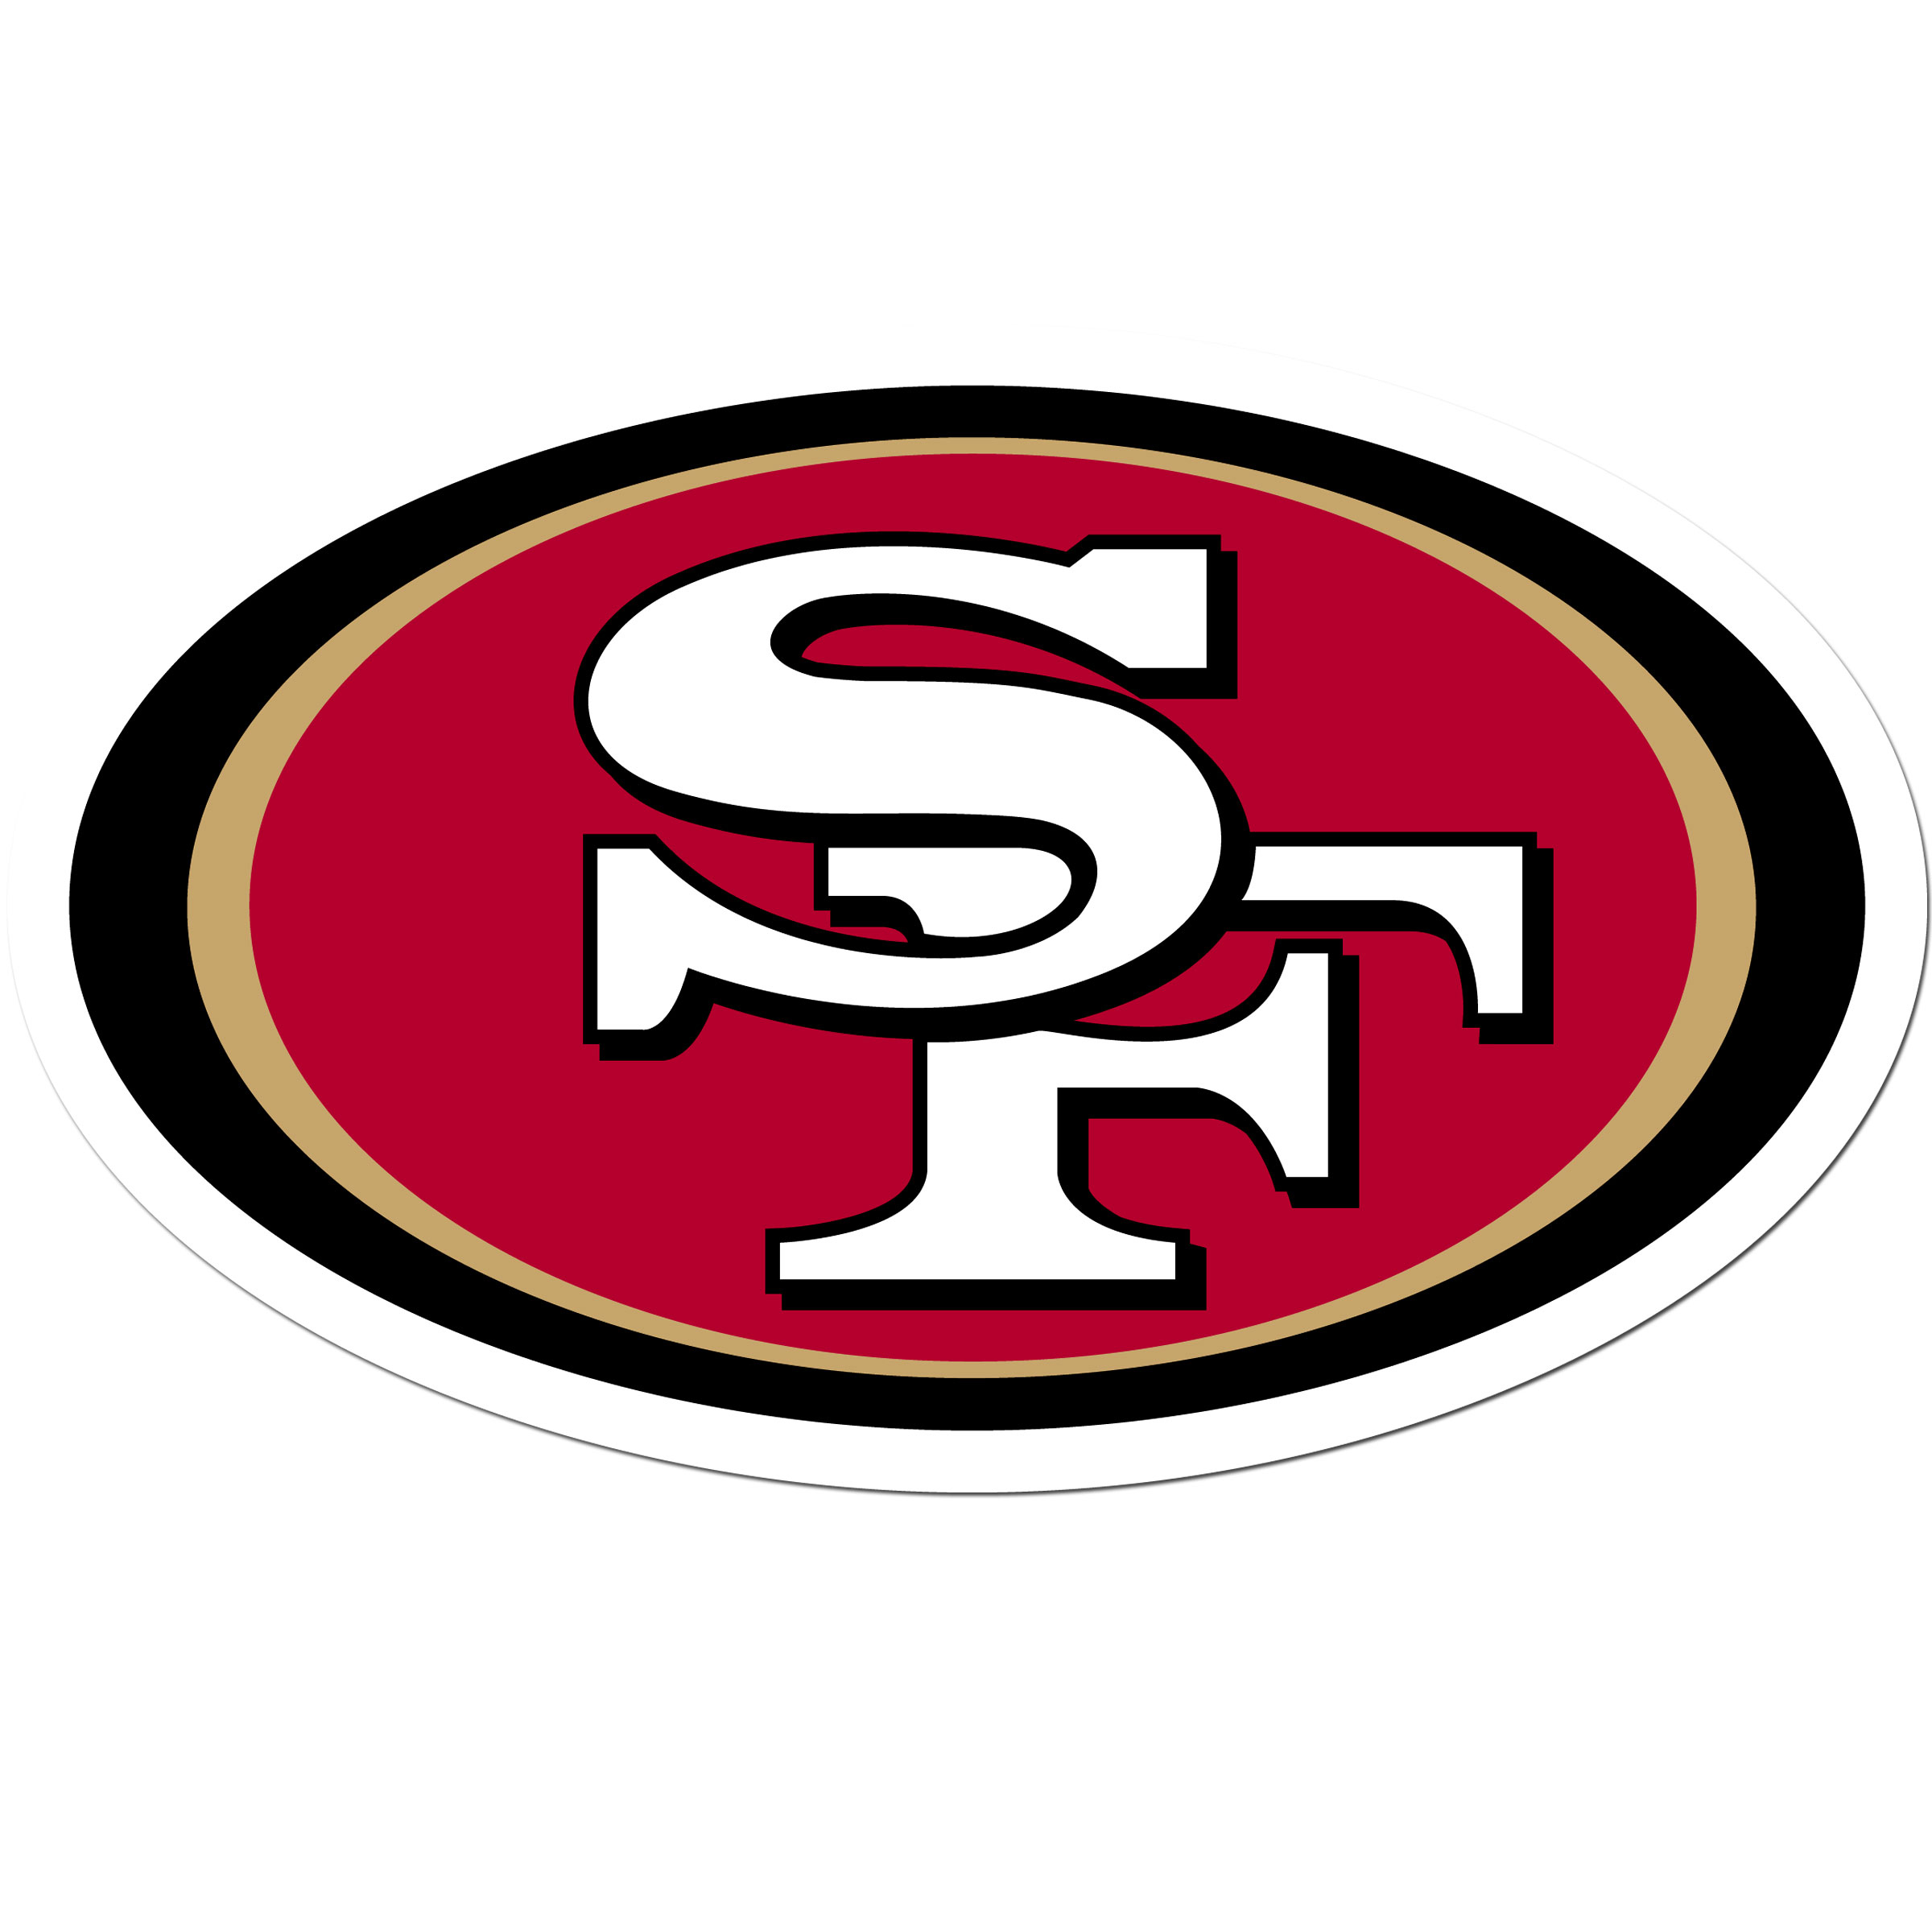 San Francisco 49ers 8 inch Auto Decal - This bold, 8 inch San Francisco 49ers is a great way to show off your team pride! The low tack vinyl decal is easily positioned and adjusted to make sure you get that logo in just the right spot on your vehicle. Designed to be used on the outside of the window.